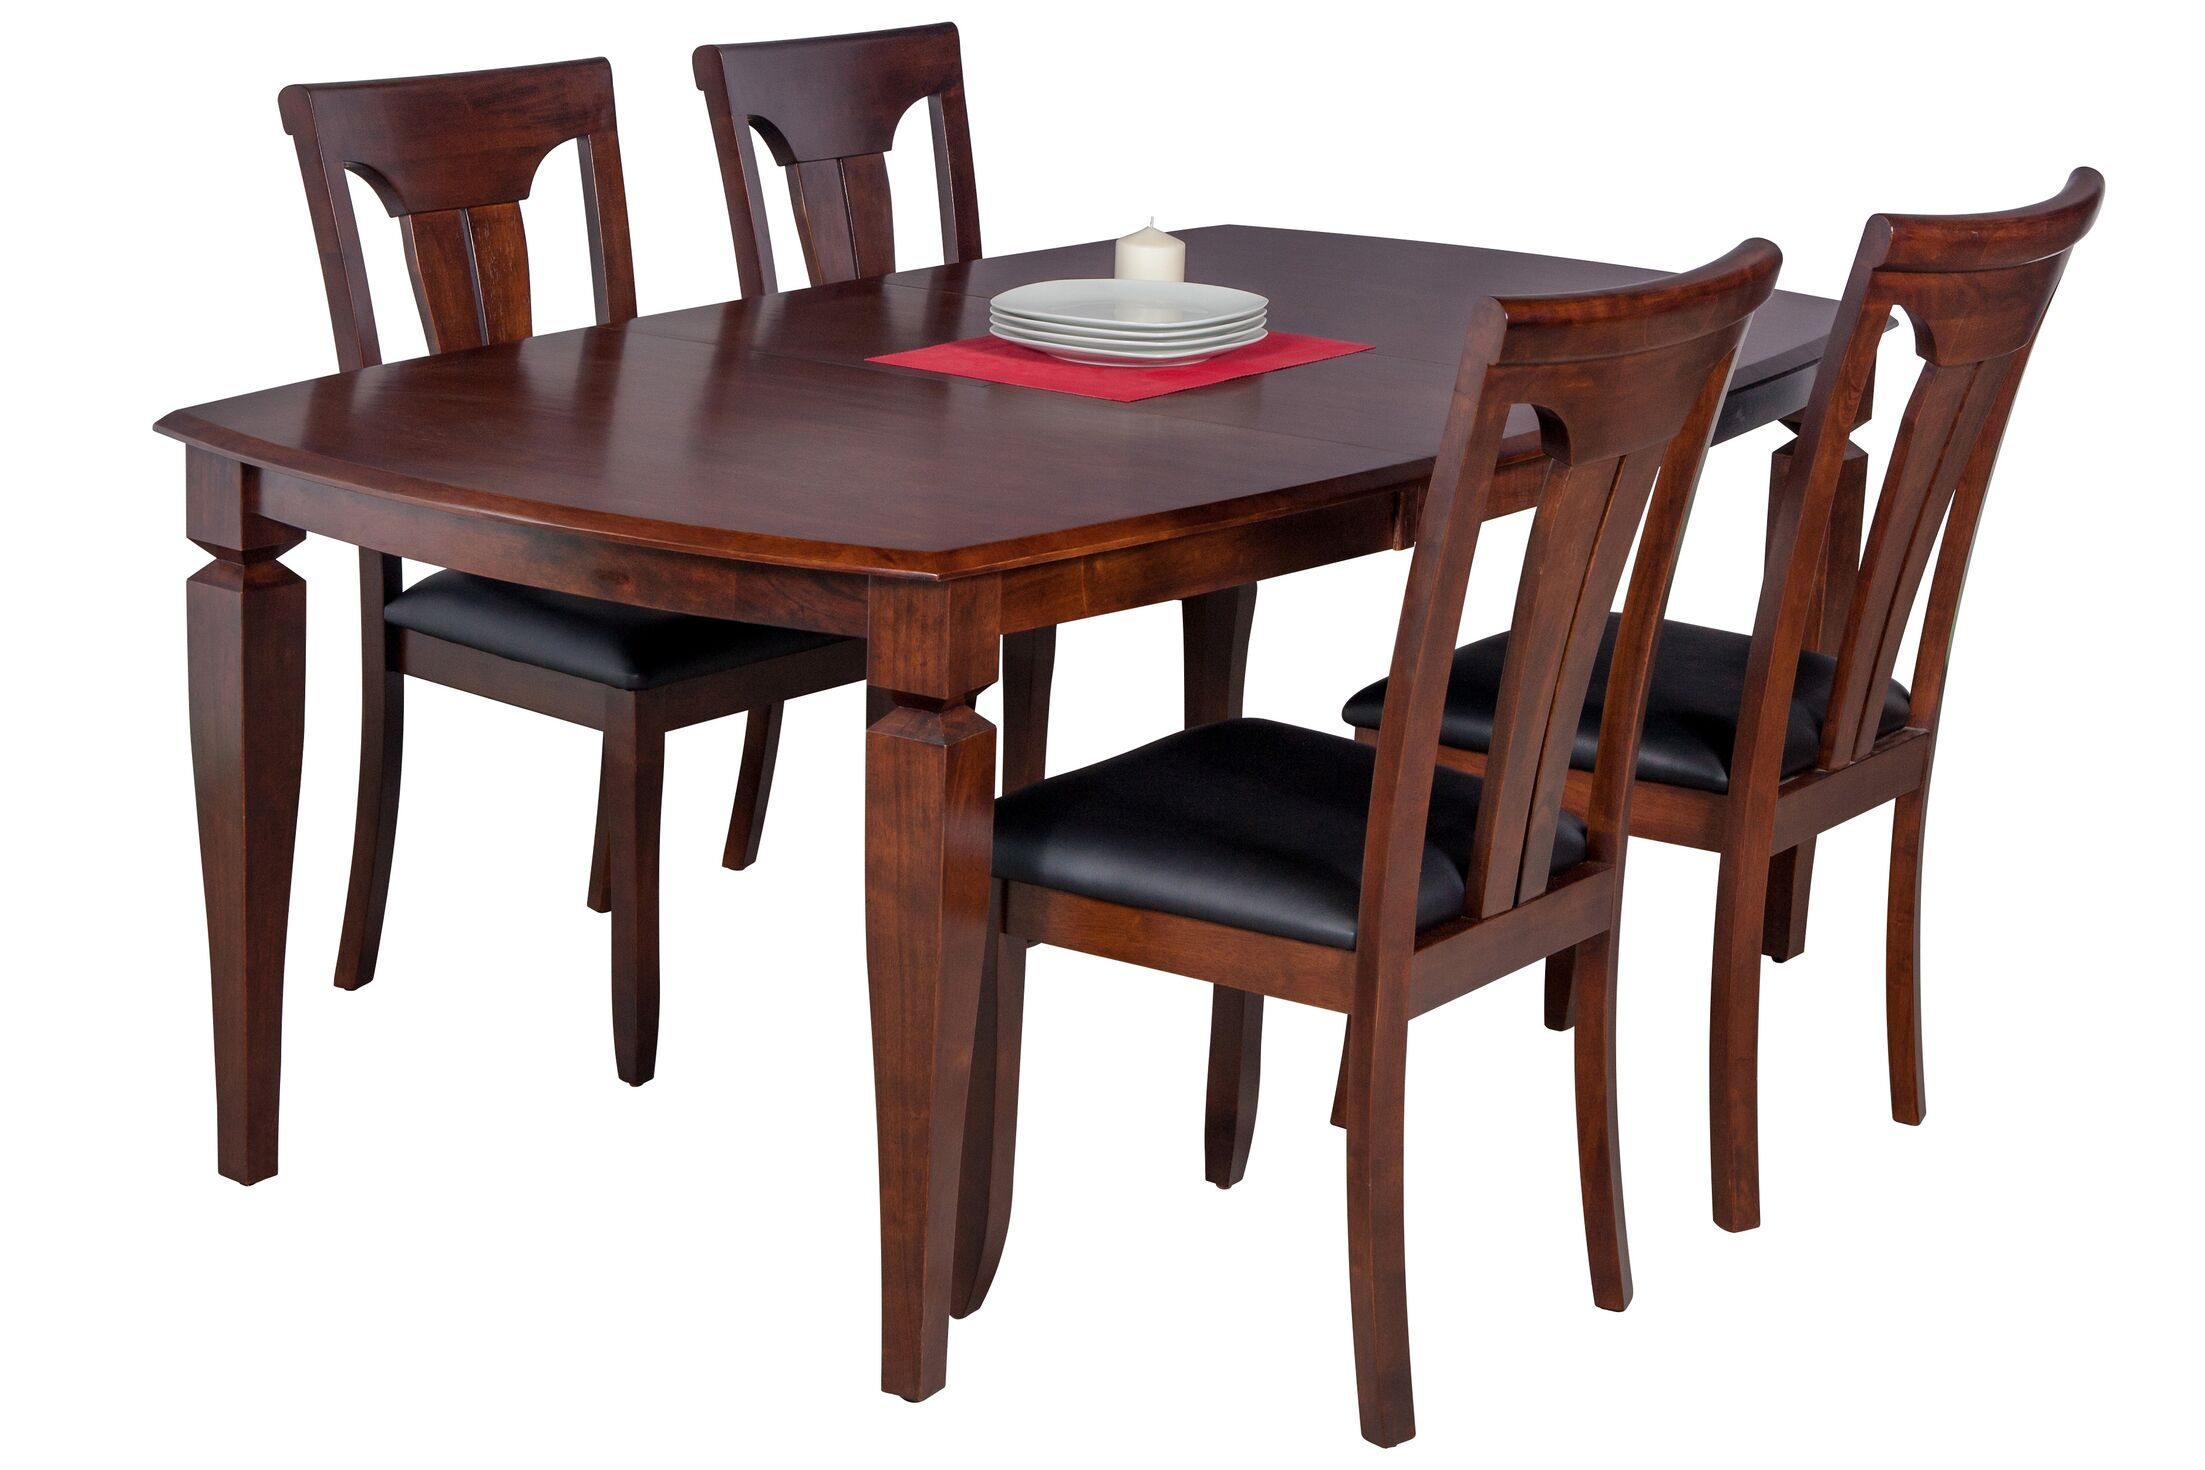 Dining Table Sets Besse 5 Piece Breakfast Nook Solid Wood Dining Set